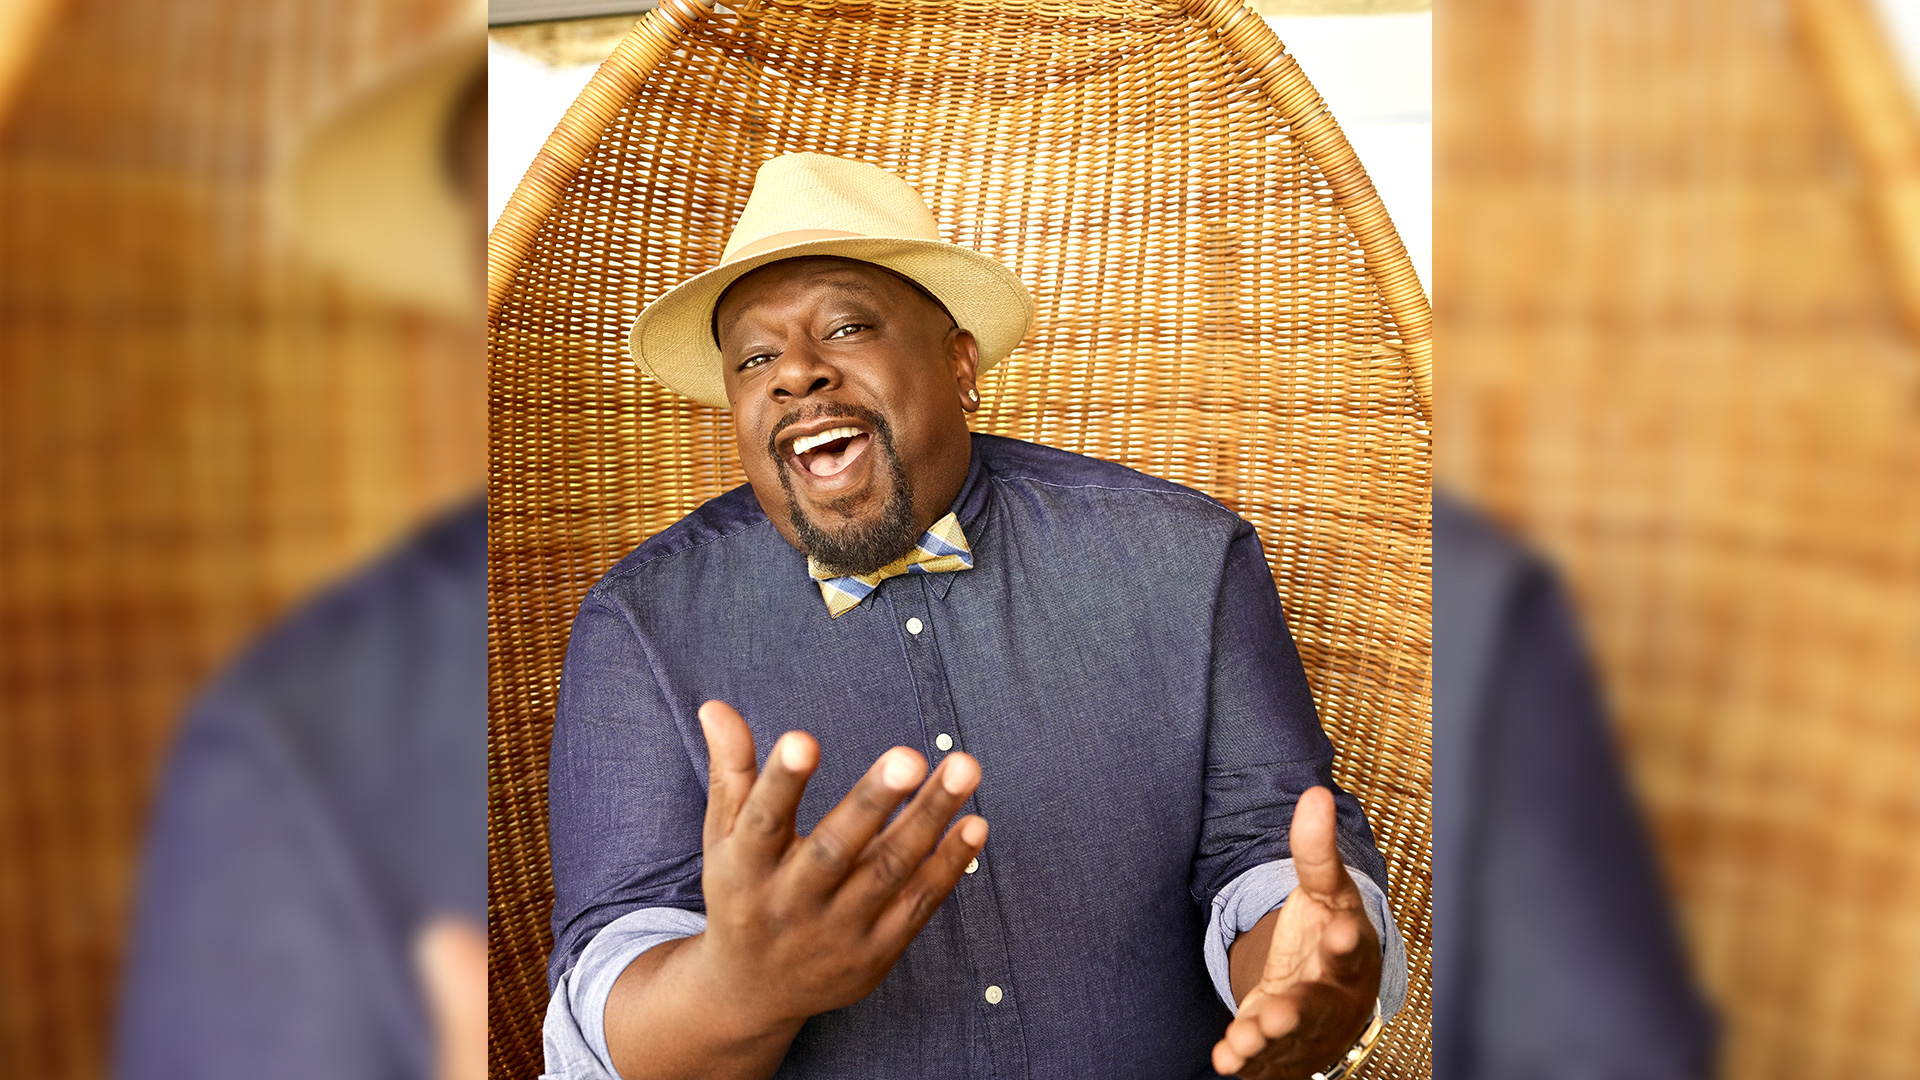 Cedric the Entertainer sets the stage